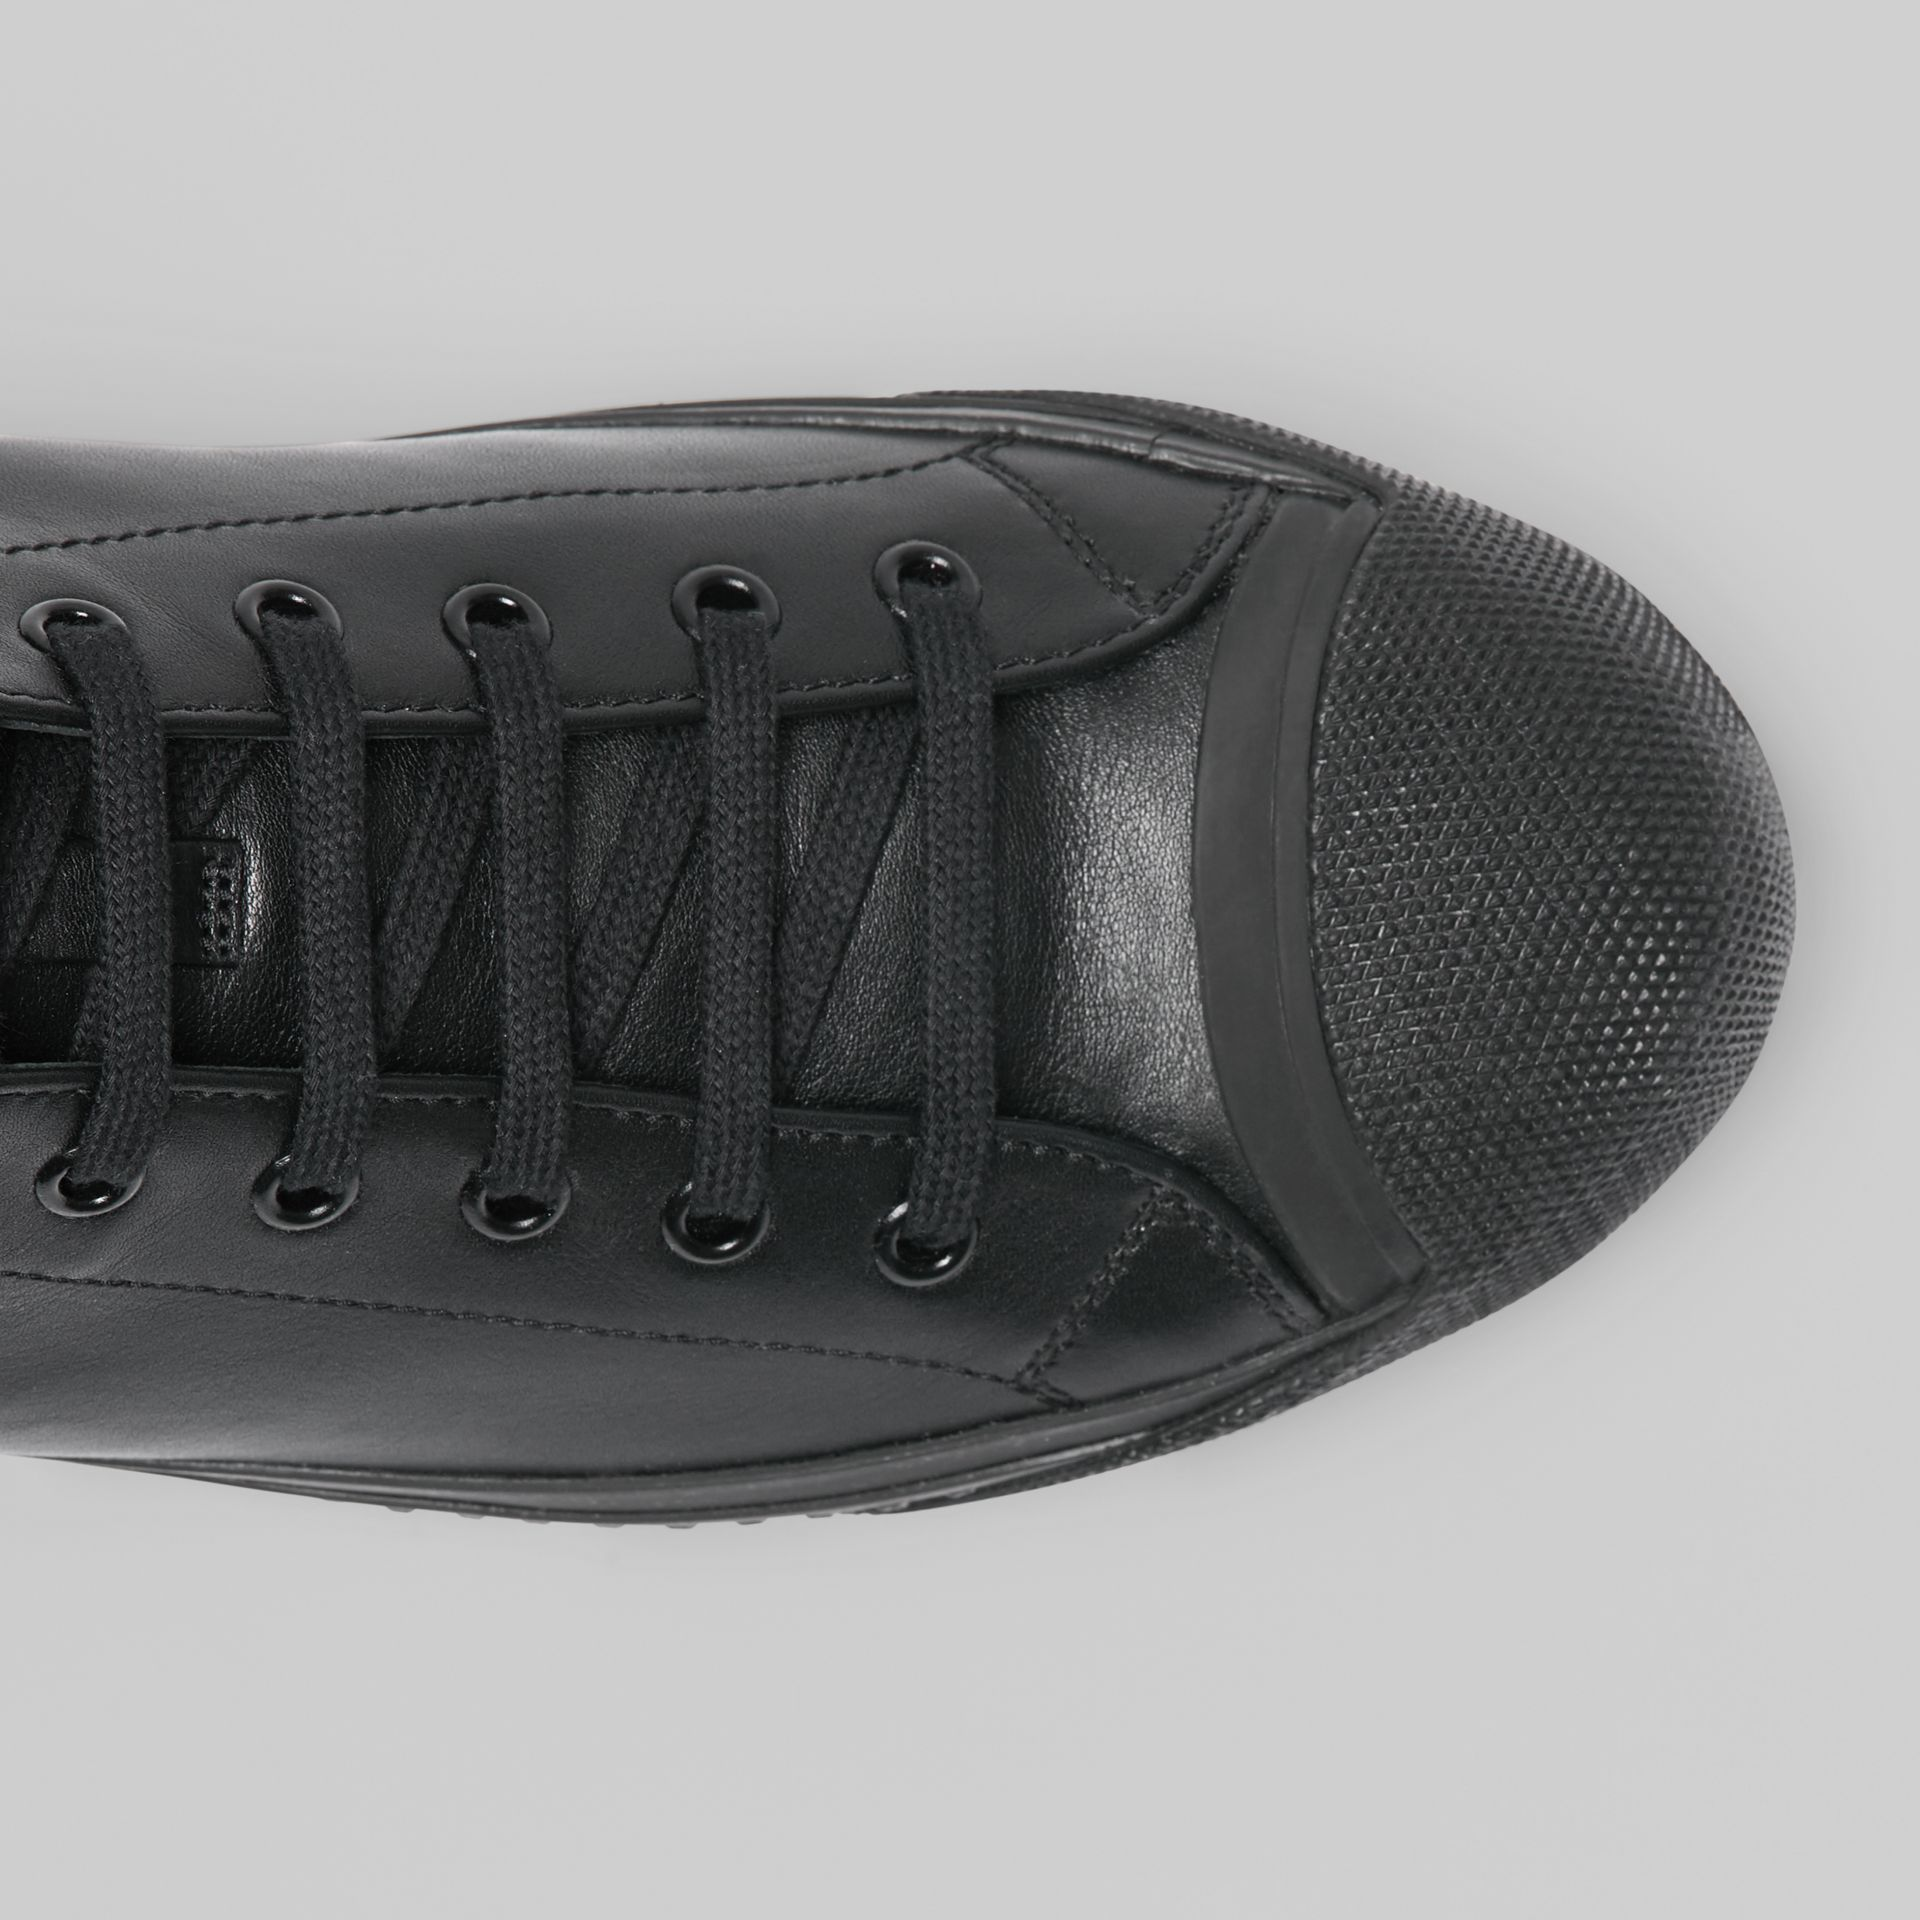 Leather and Neoprene High-top Sneakers in Black - Men | Burberry Australia - gallery image 1